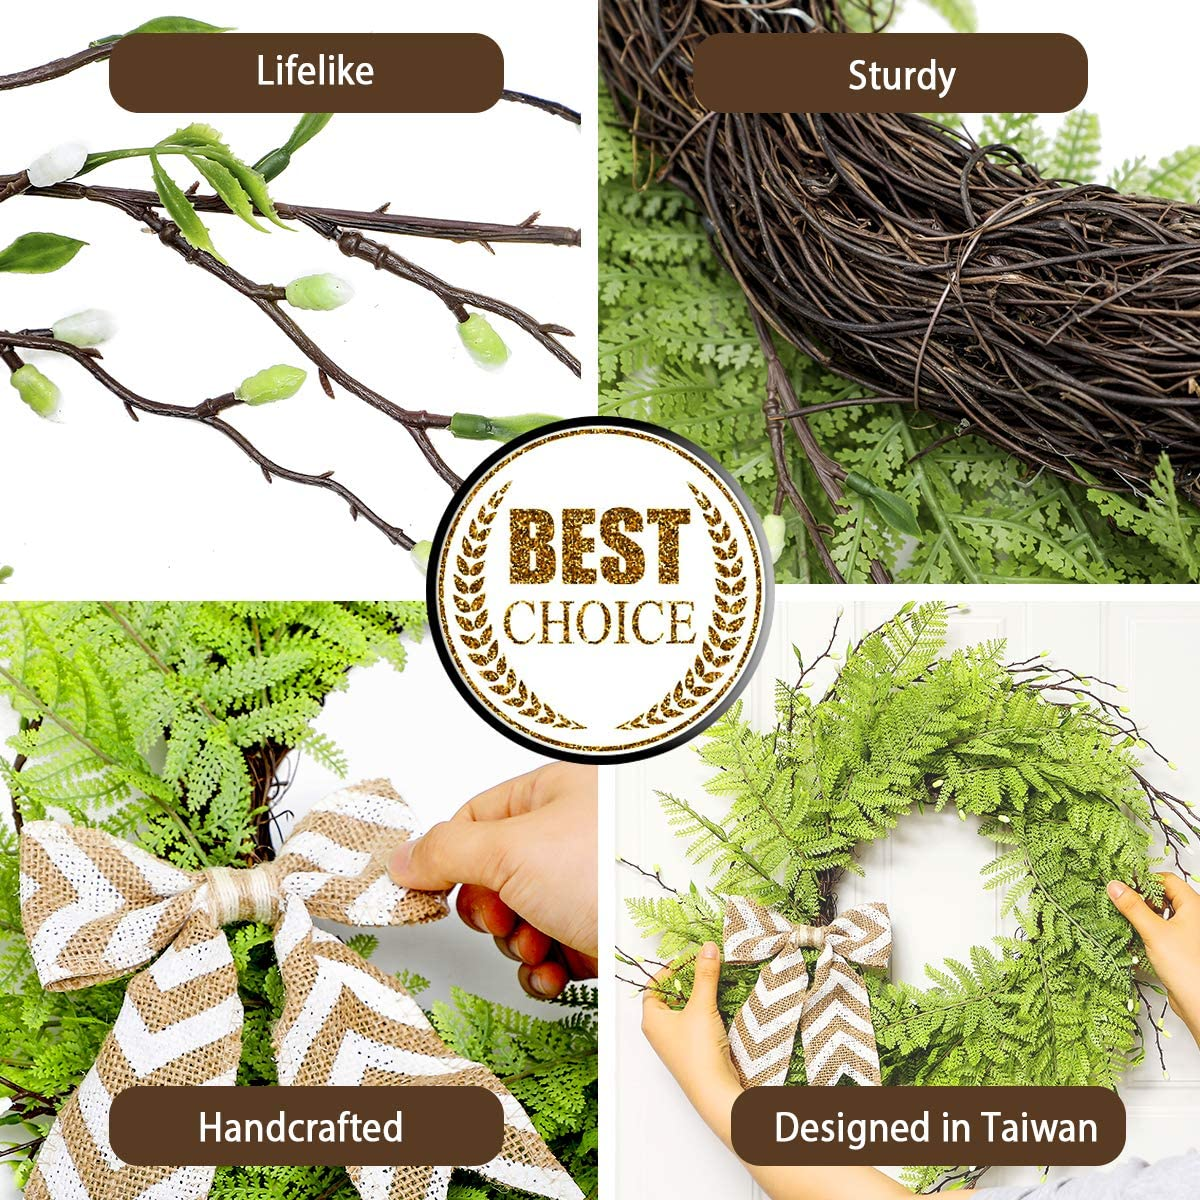 Artificial Handcrafted Green Wreath Fern Leaf for Decorations UNKENBO Door Wreaths for All Seasons 20 Front Door Wreaths for Spring and Summer Farmhouse Wreaths for Front Door Outside